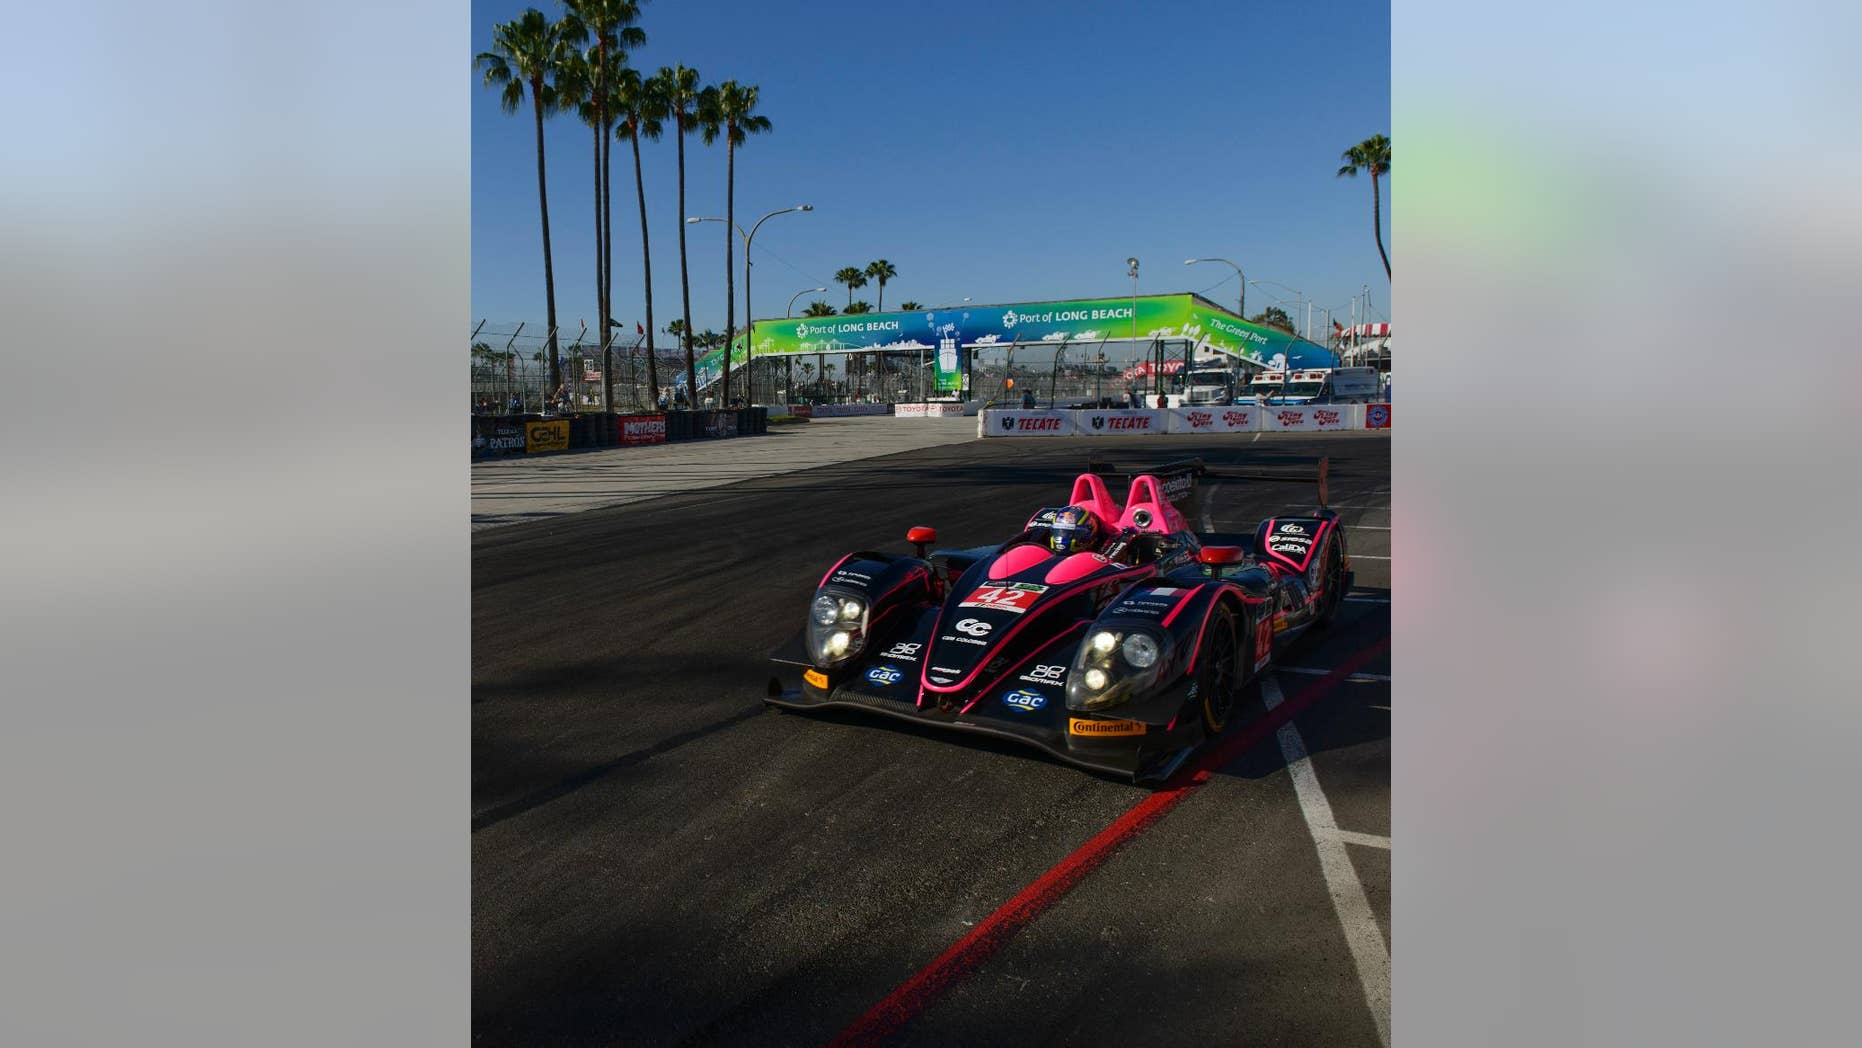 Team Oak Racing races during the practice for the IMSA series Toyota Grand Prix of Long Beach auto race in Long Beach, Calif., Friday, April 11, 2014. (AP Photo/Kelvin Kuo)